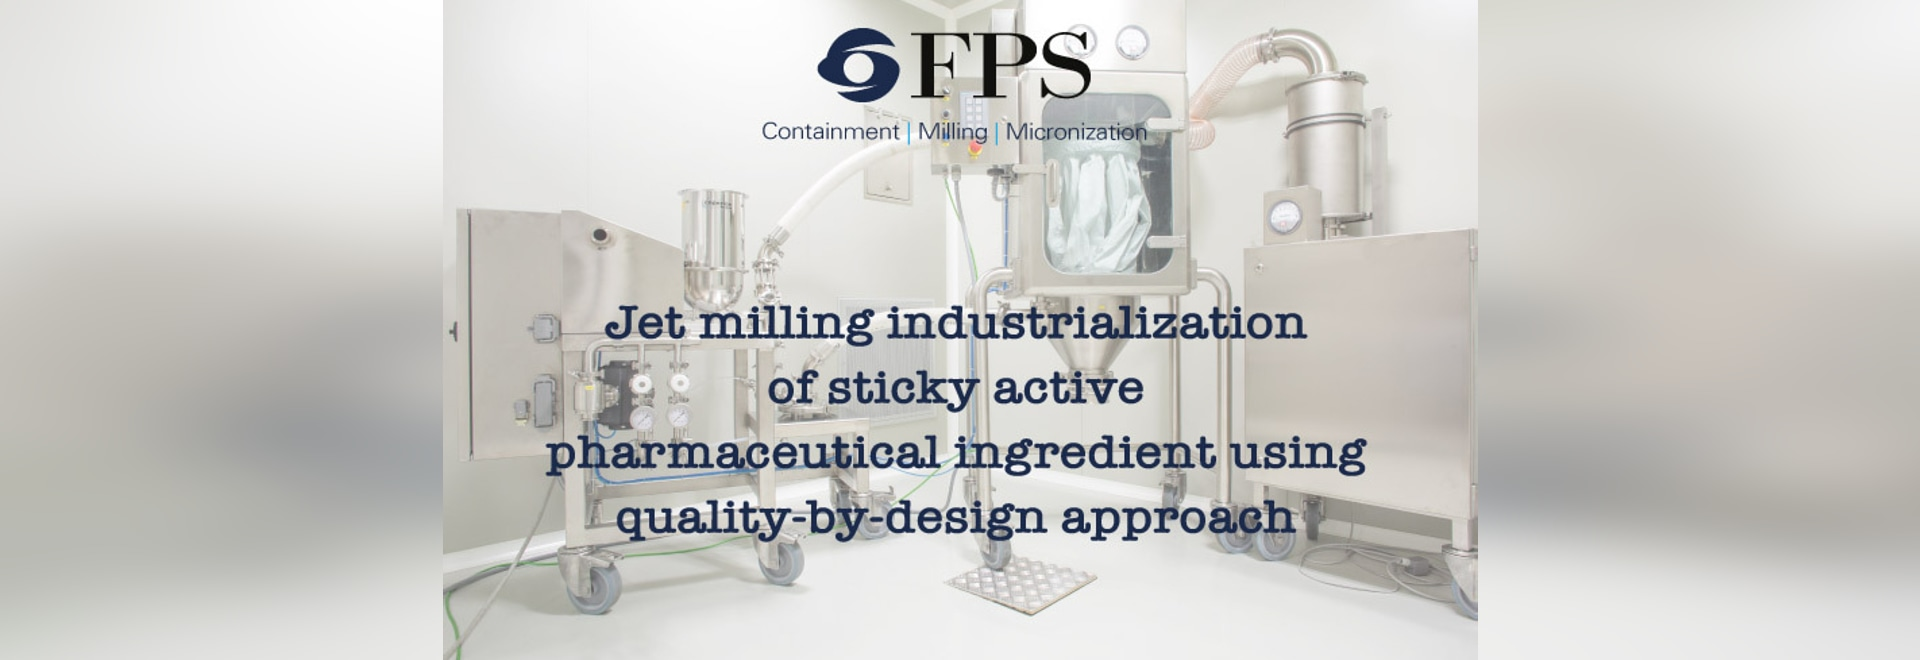 Jet milling industrialization of sticky active pharmaceutical ingredient using quality-by-design approach